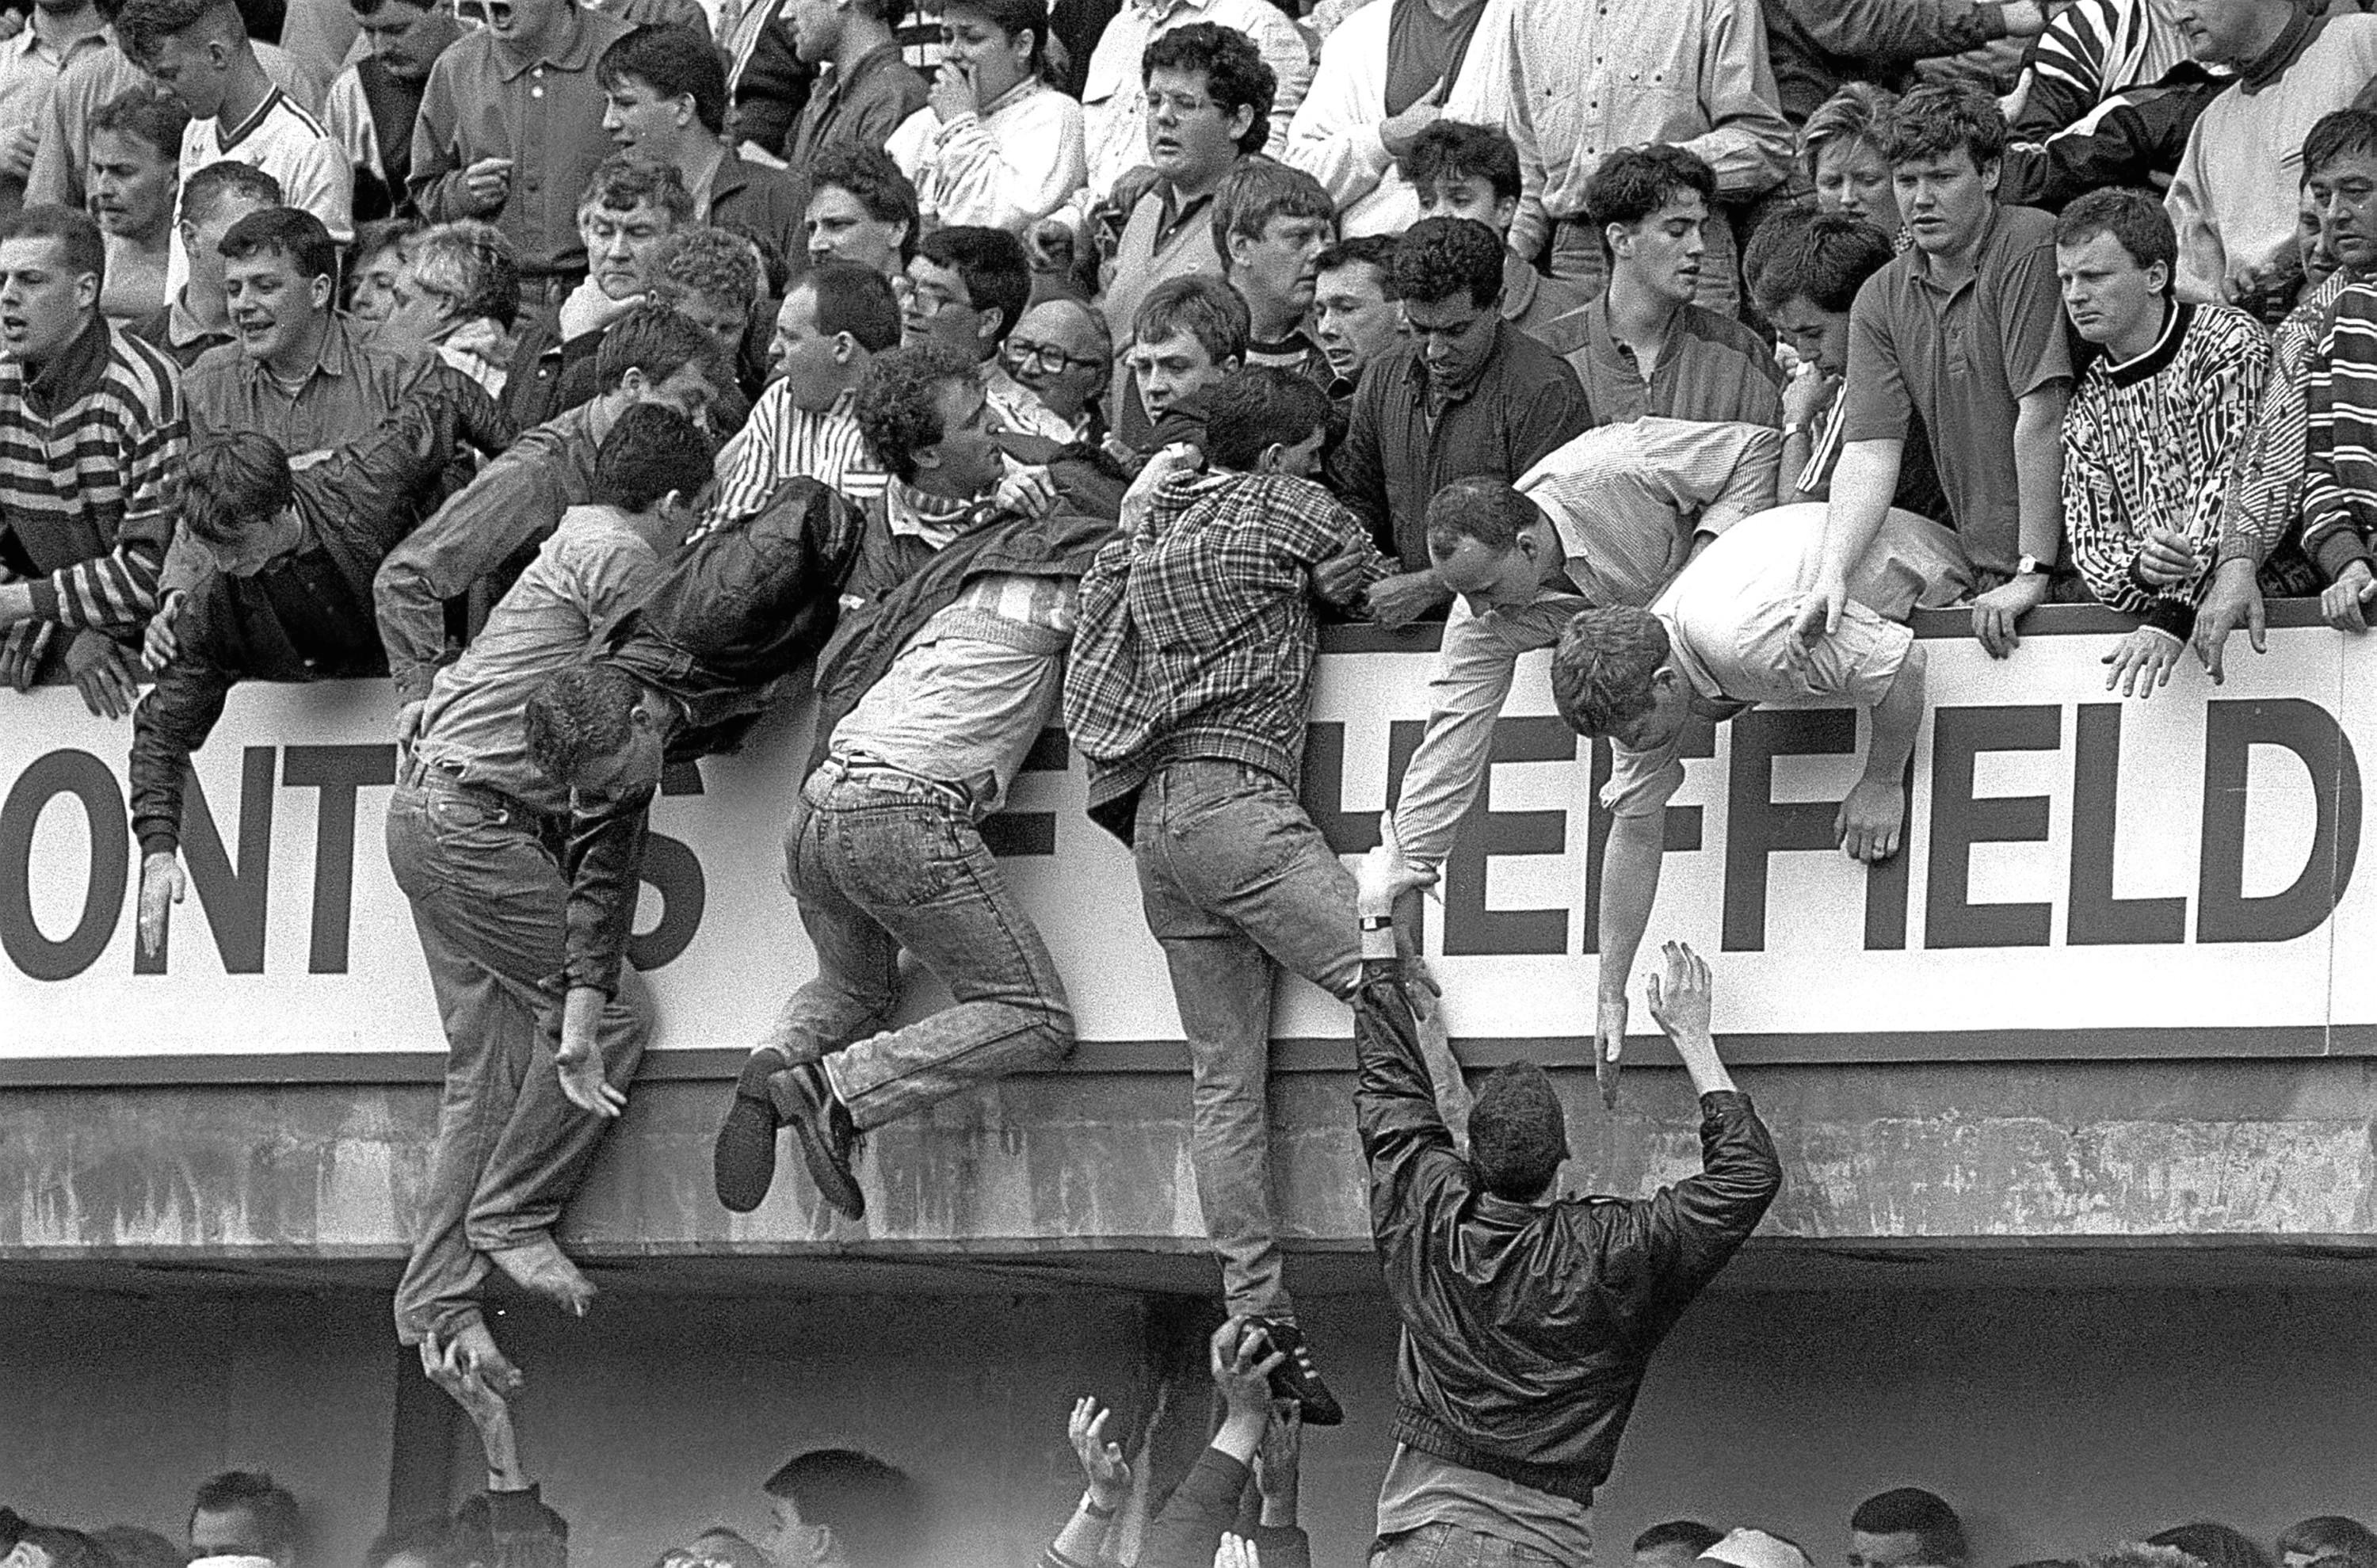 Liverpool fans trying to escape during the Hillsborough disaster.